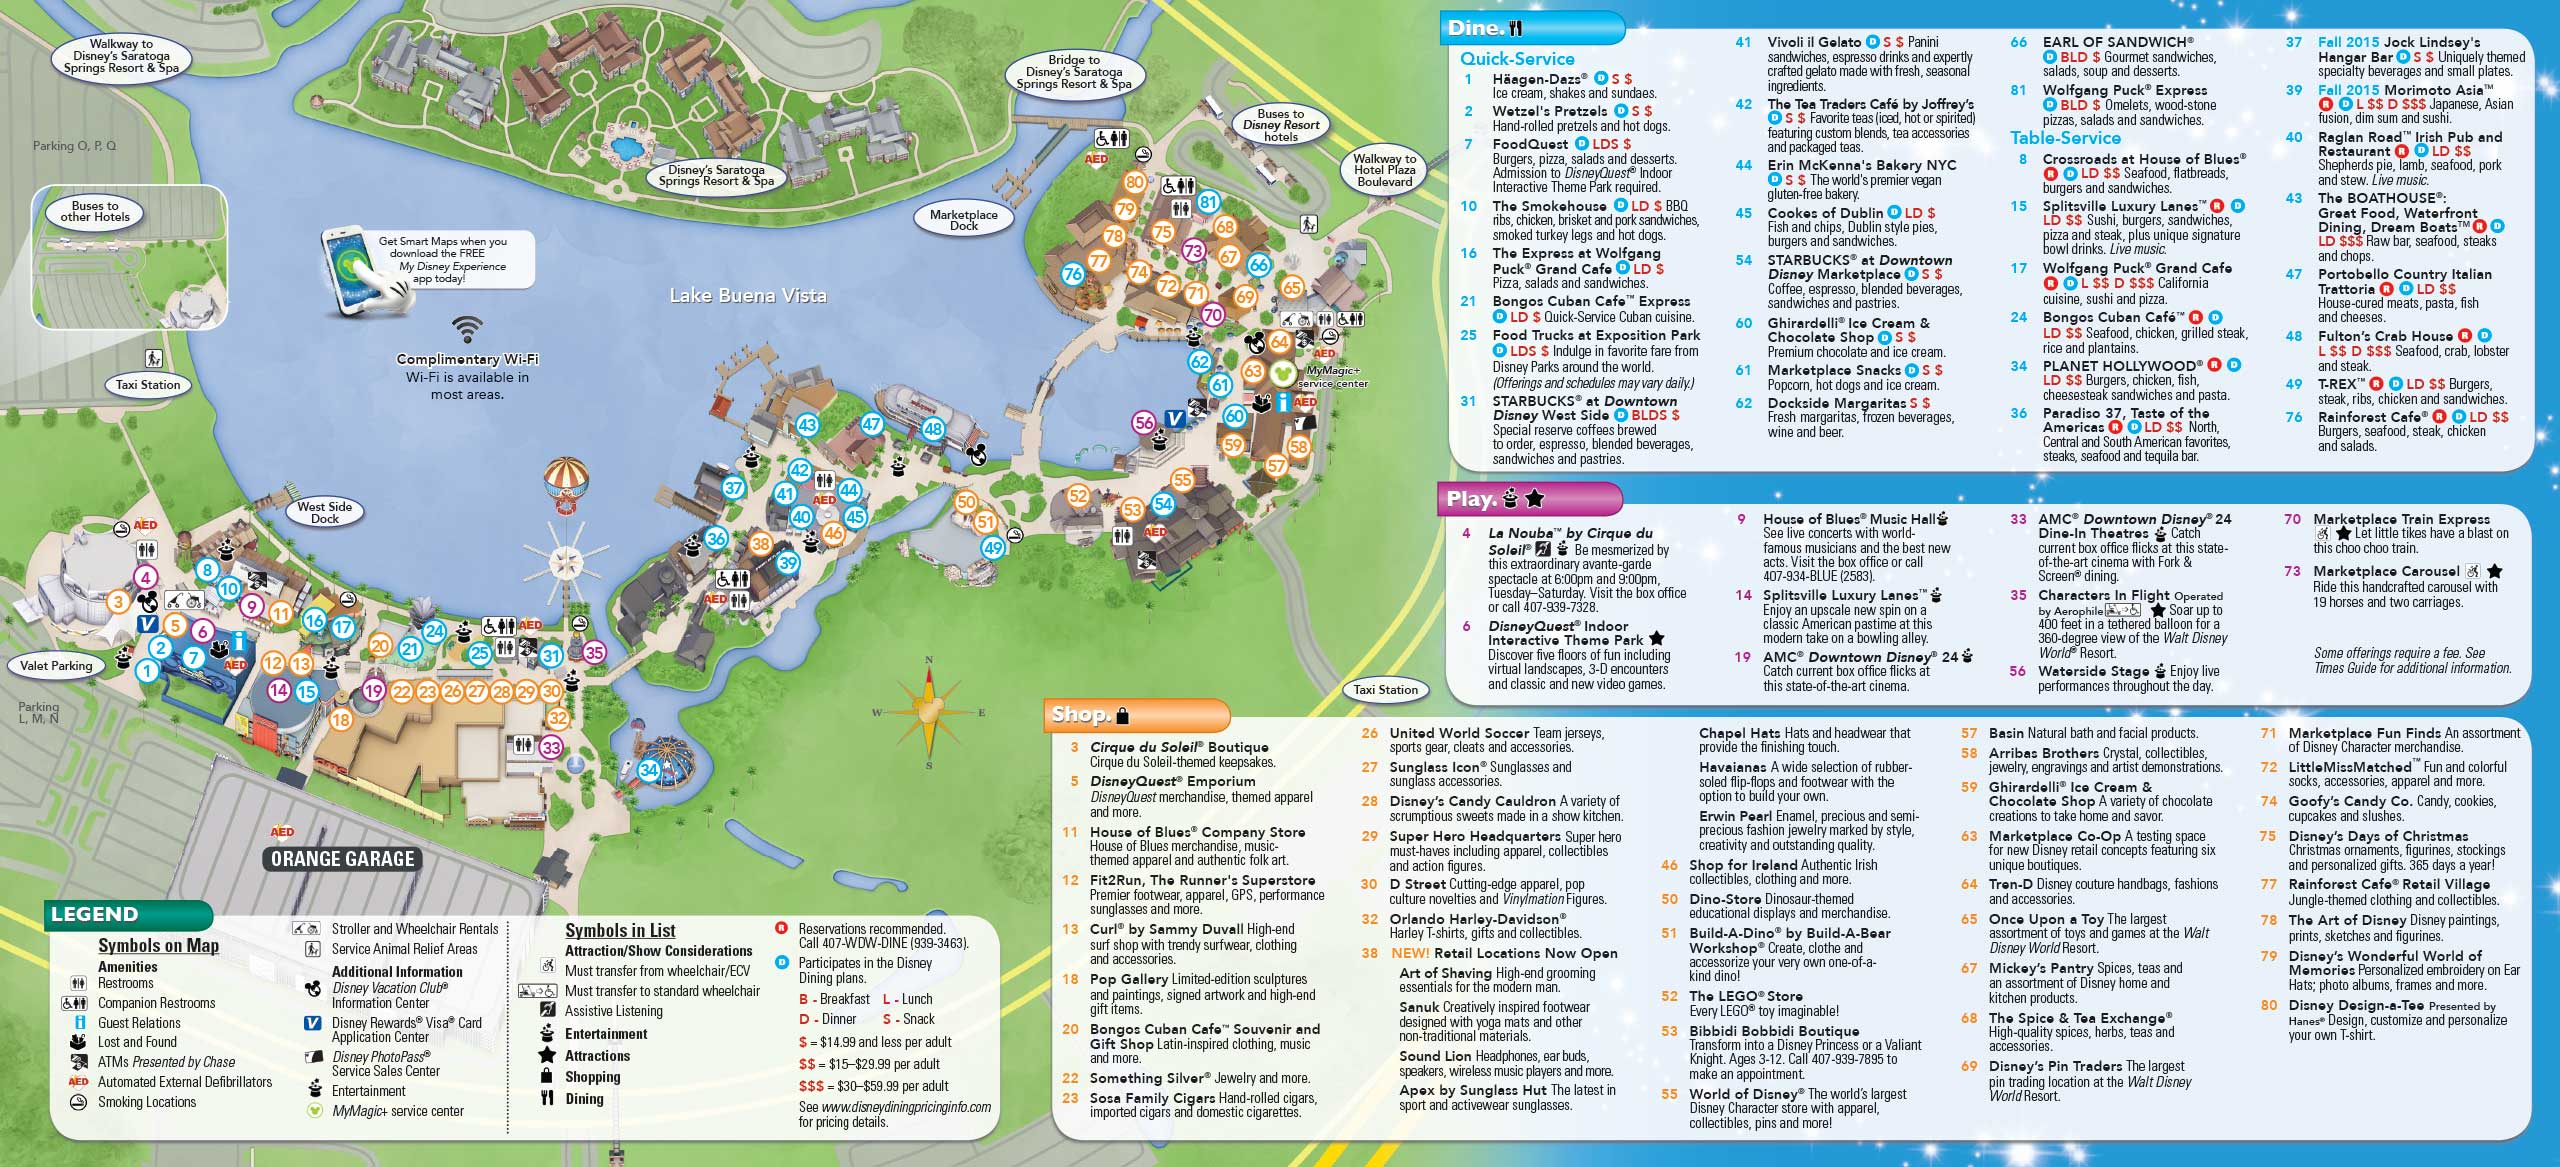 Photos new downtown disney guide map includes disney springs name photos new downtown disney guide map includes disney springs name and new restaurants gumiabroncs Choice Image